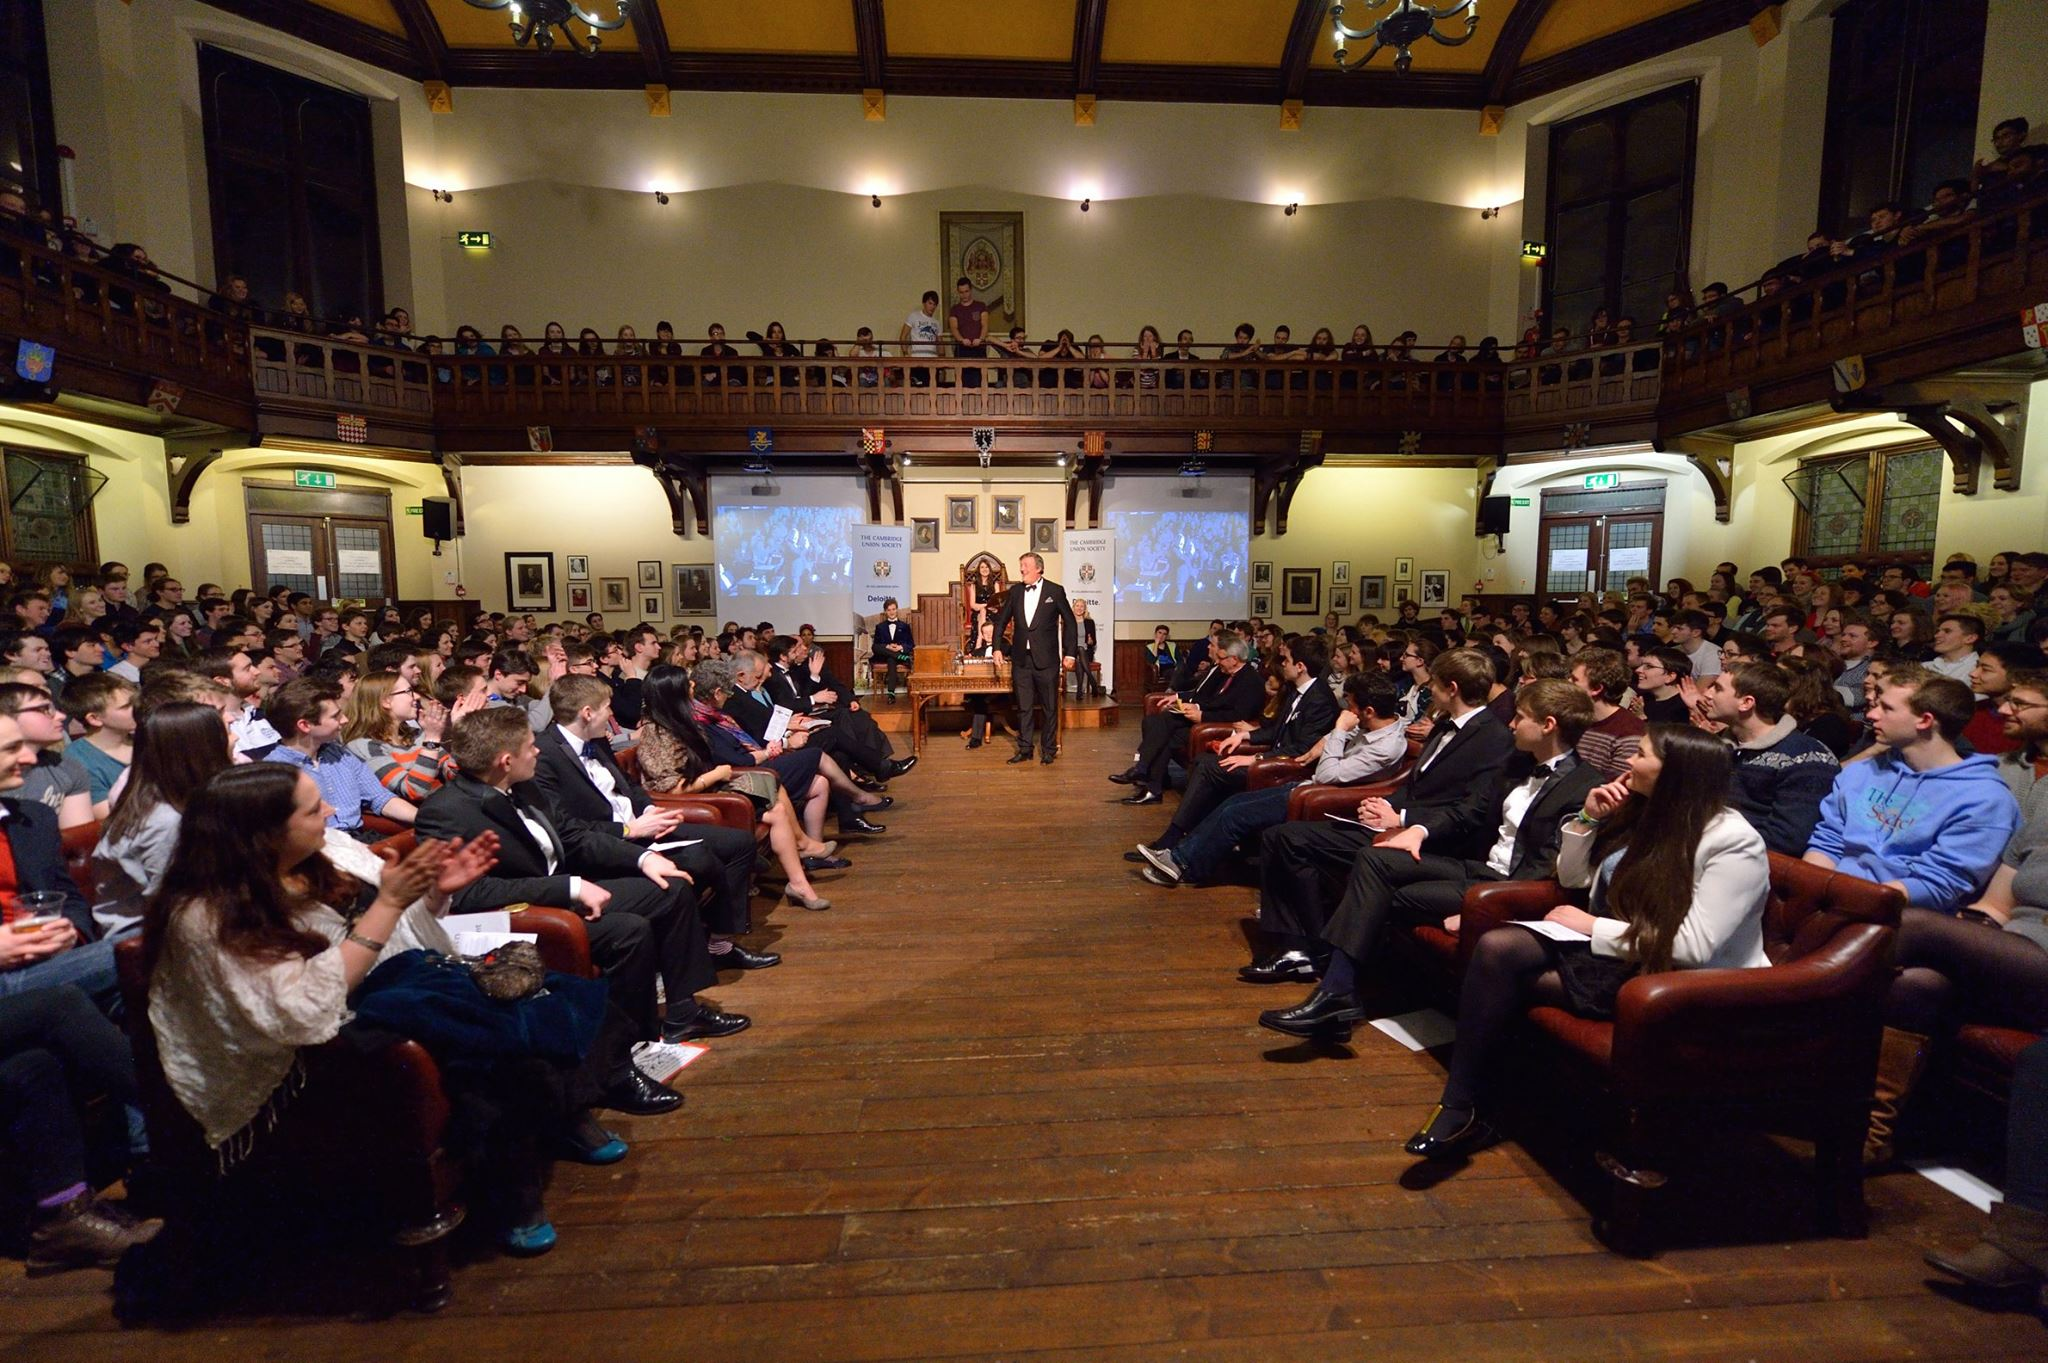 A debate at the Cambridge Union